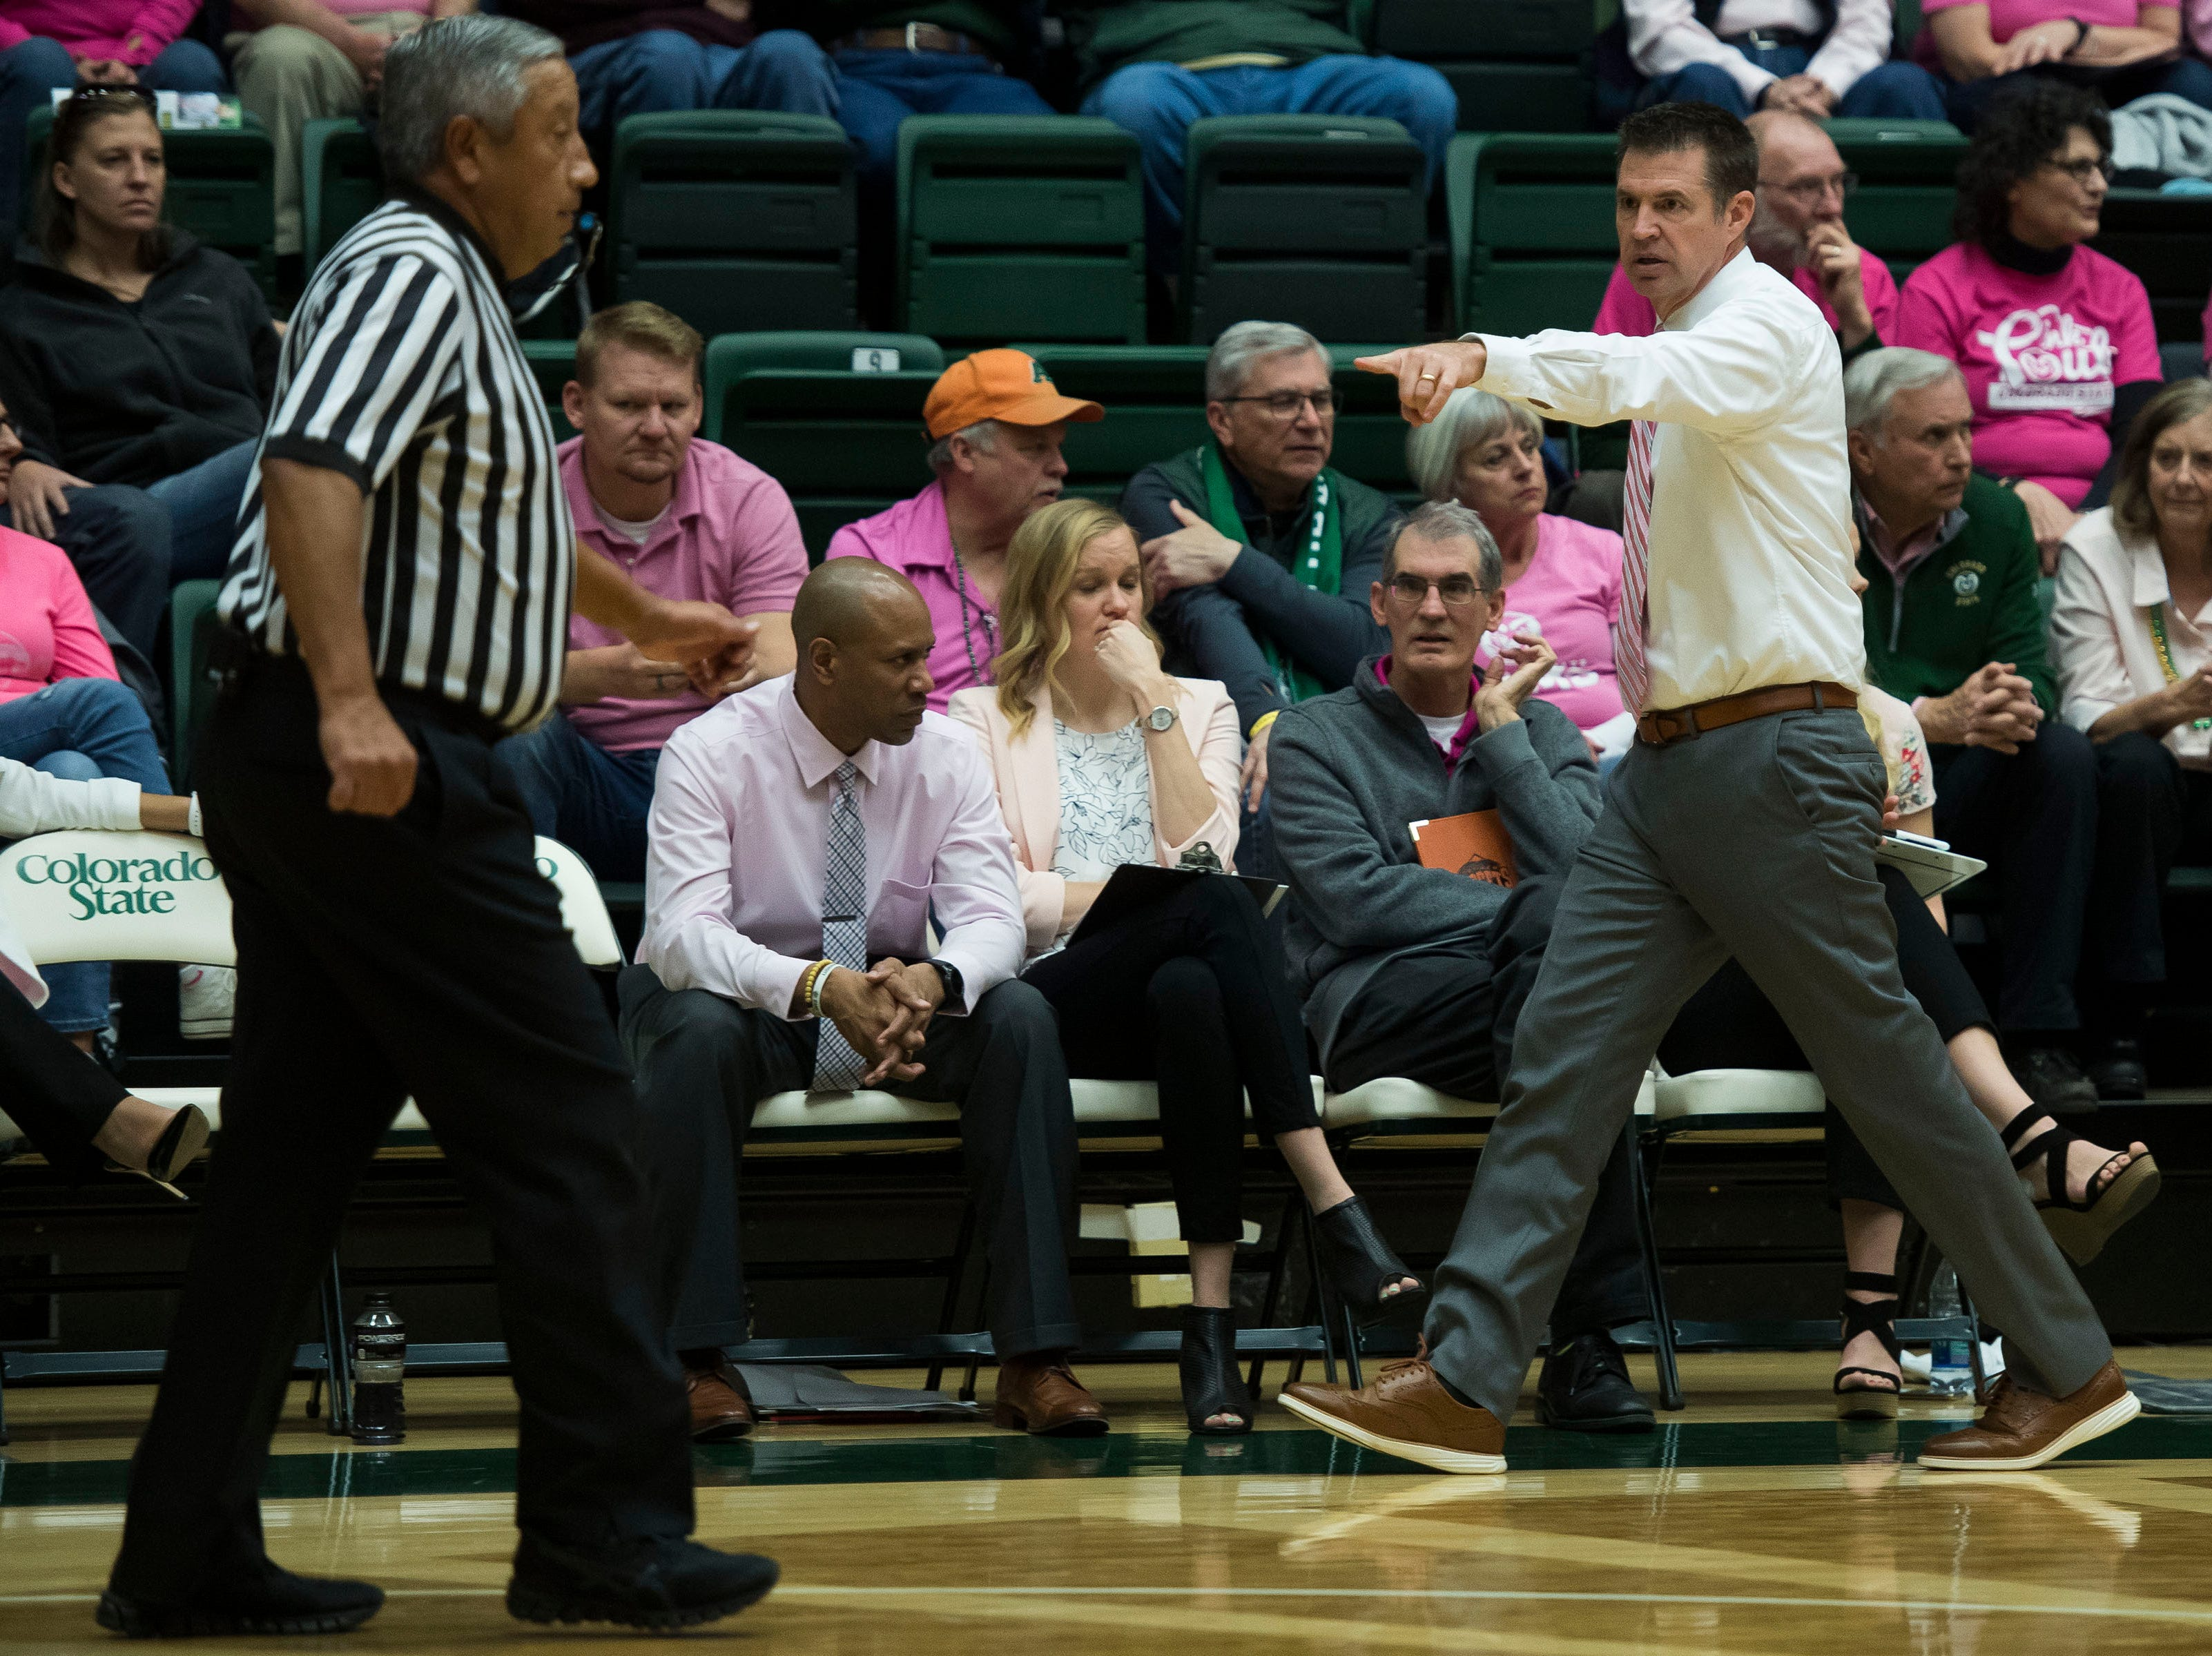 Colorado State University head coach Ryun Williams talks to an official during a game against Utah State on Saturday, Jan. 19, 2019, at Moby Arena in Fort Collins, Colo.